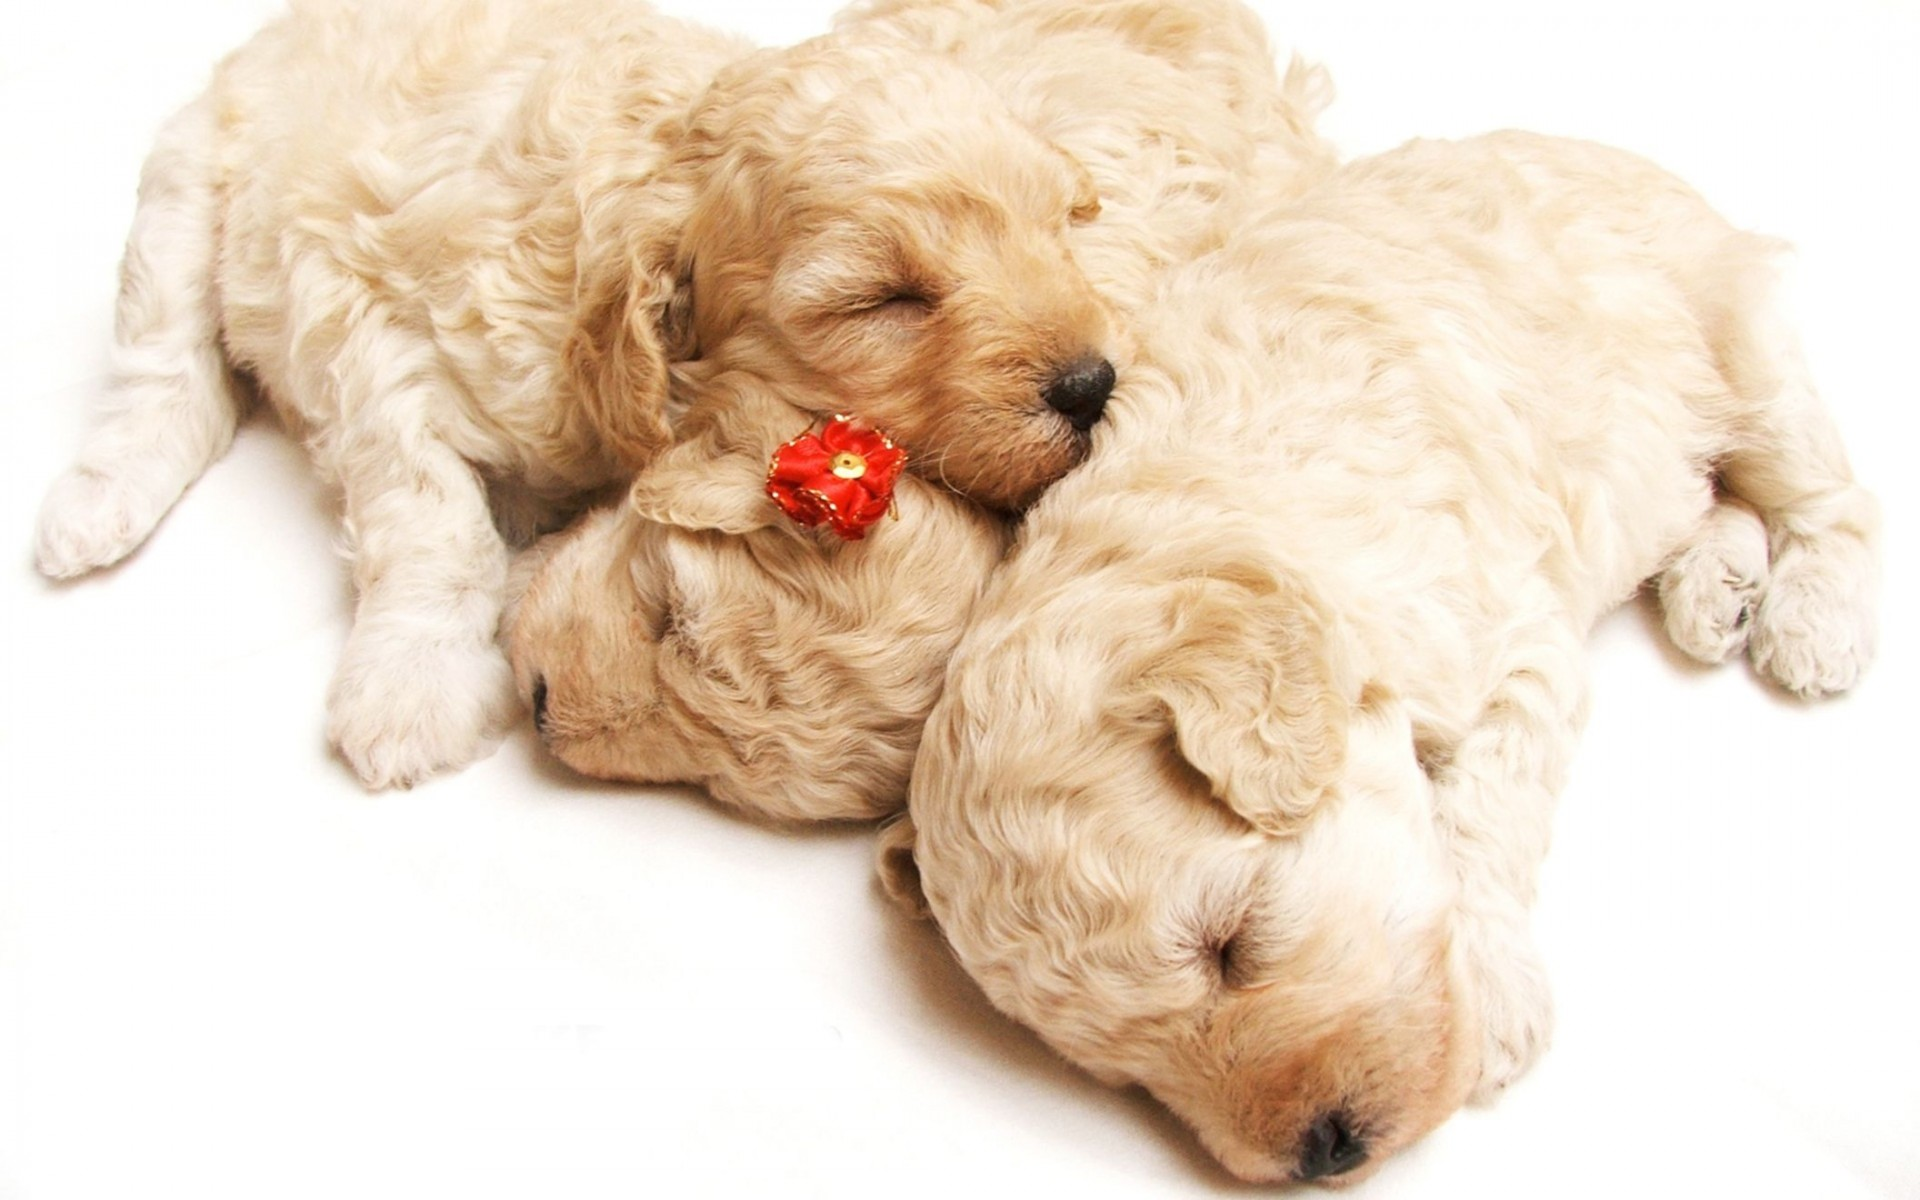 Cute Sleeping Puppies Wide Wallpaper